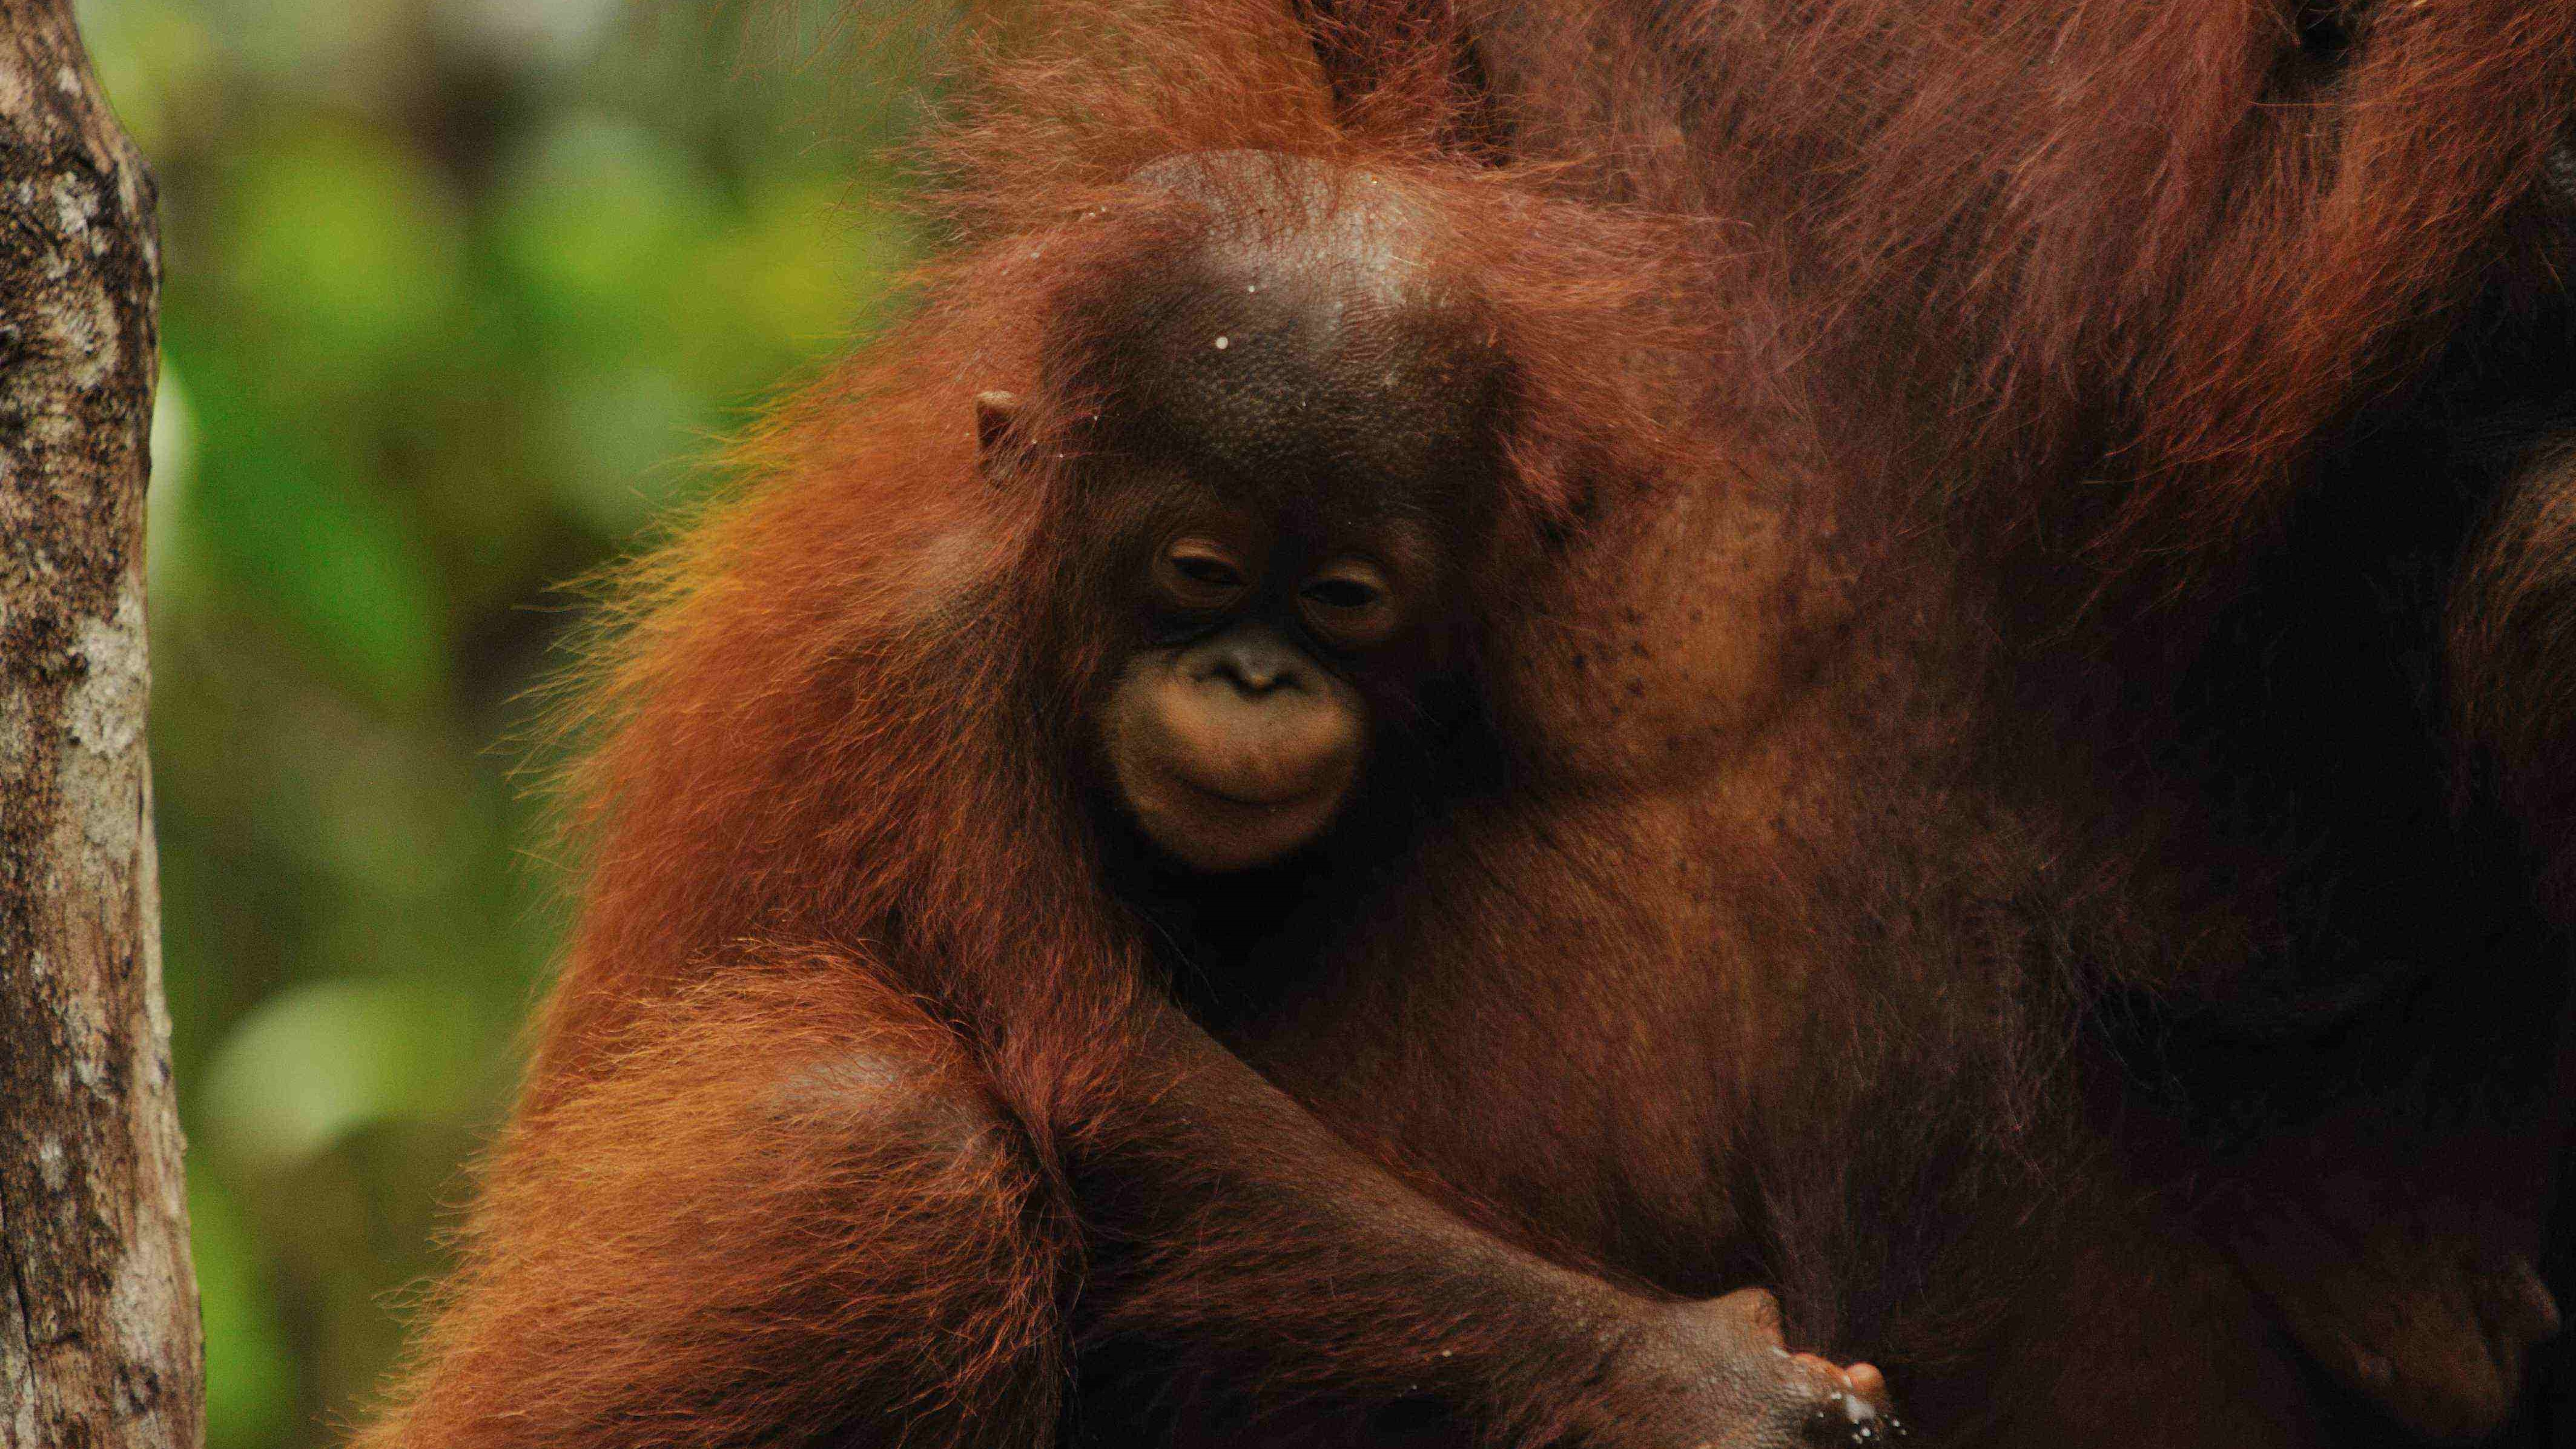 Tanjung Puting tour, wildlife orangutan safari trips, Borneo, Kalimantan Indonesia, Tanjung Puting Park, Jungle Adventure trek, Camp Leakey, orangutan, forest, jungle, klotok boat, guide, trip, sail, cruise, rent, hire, price